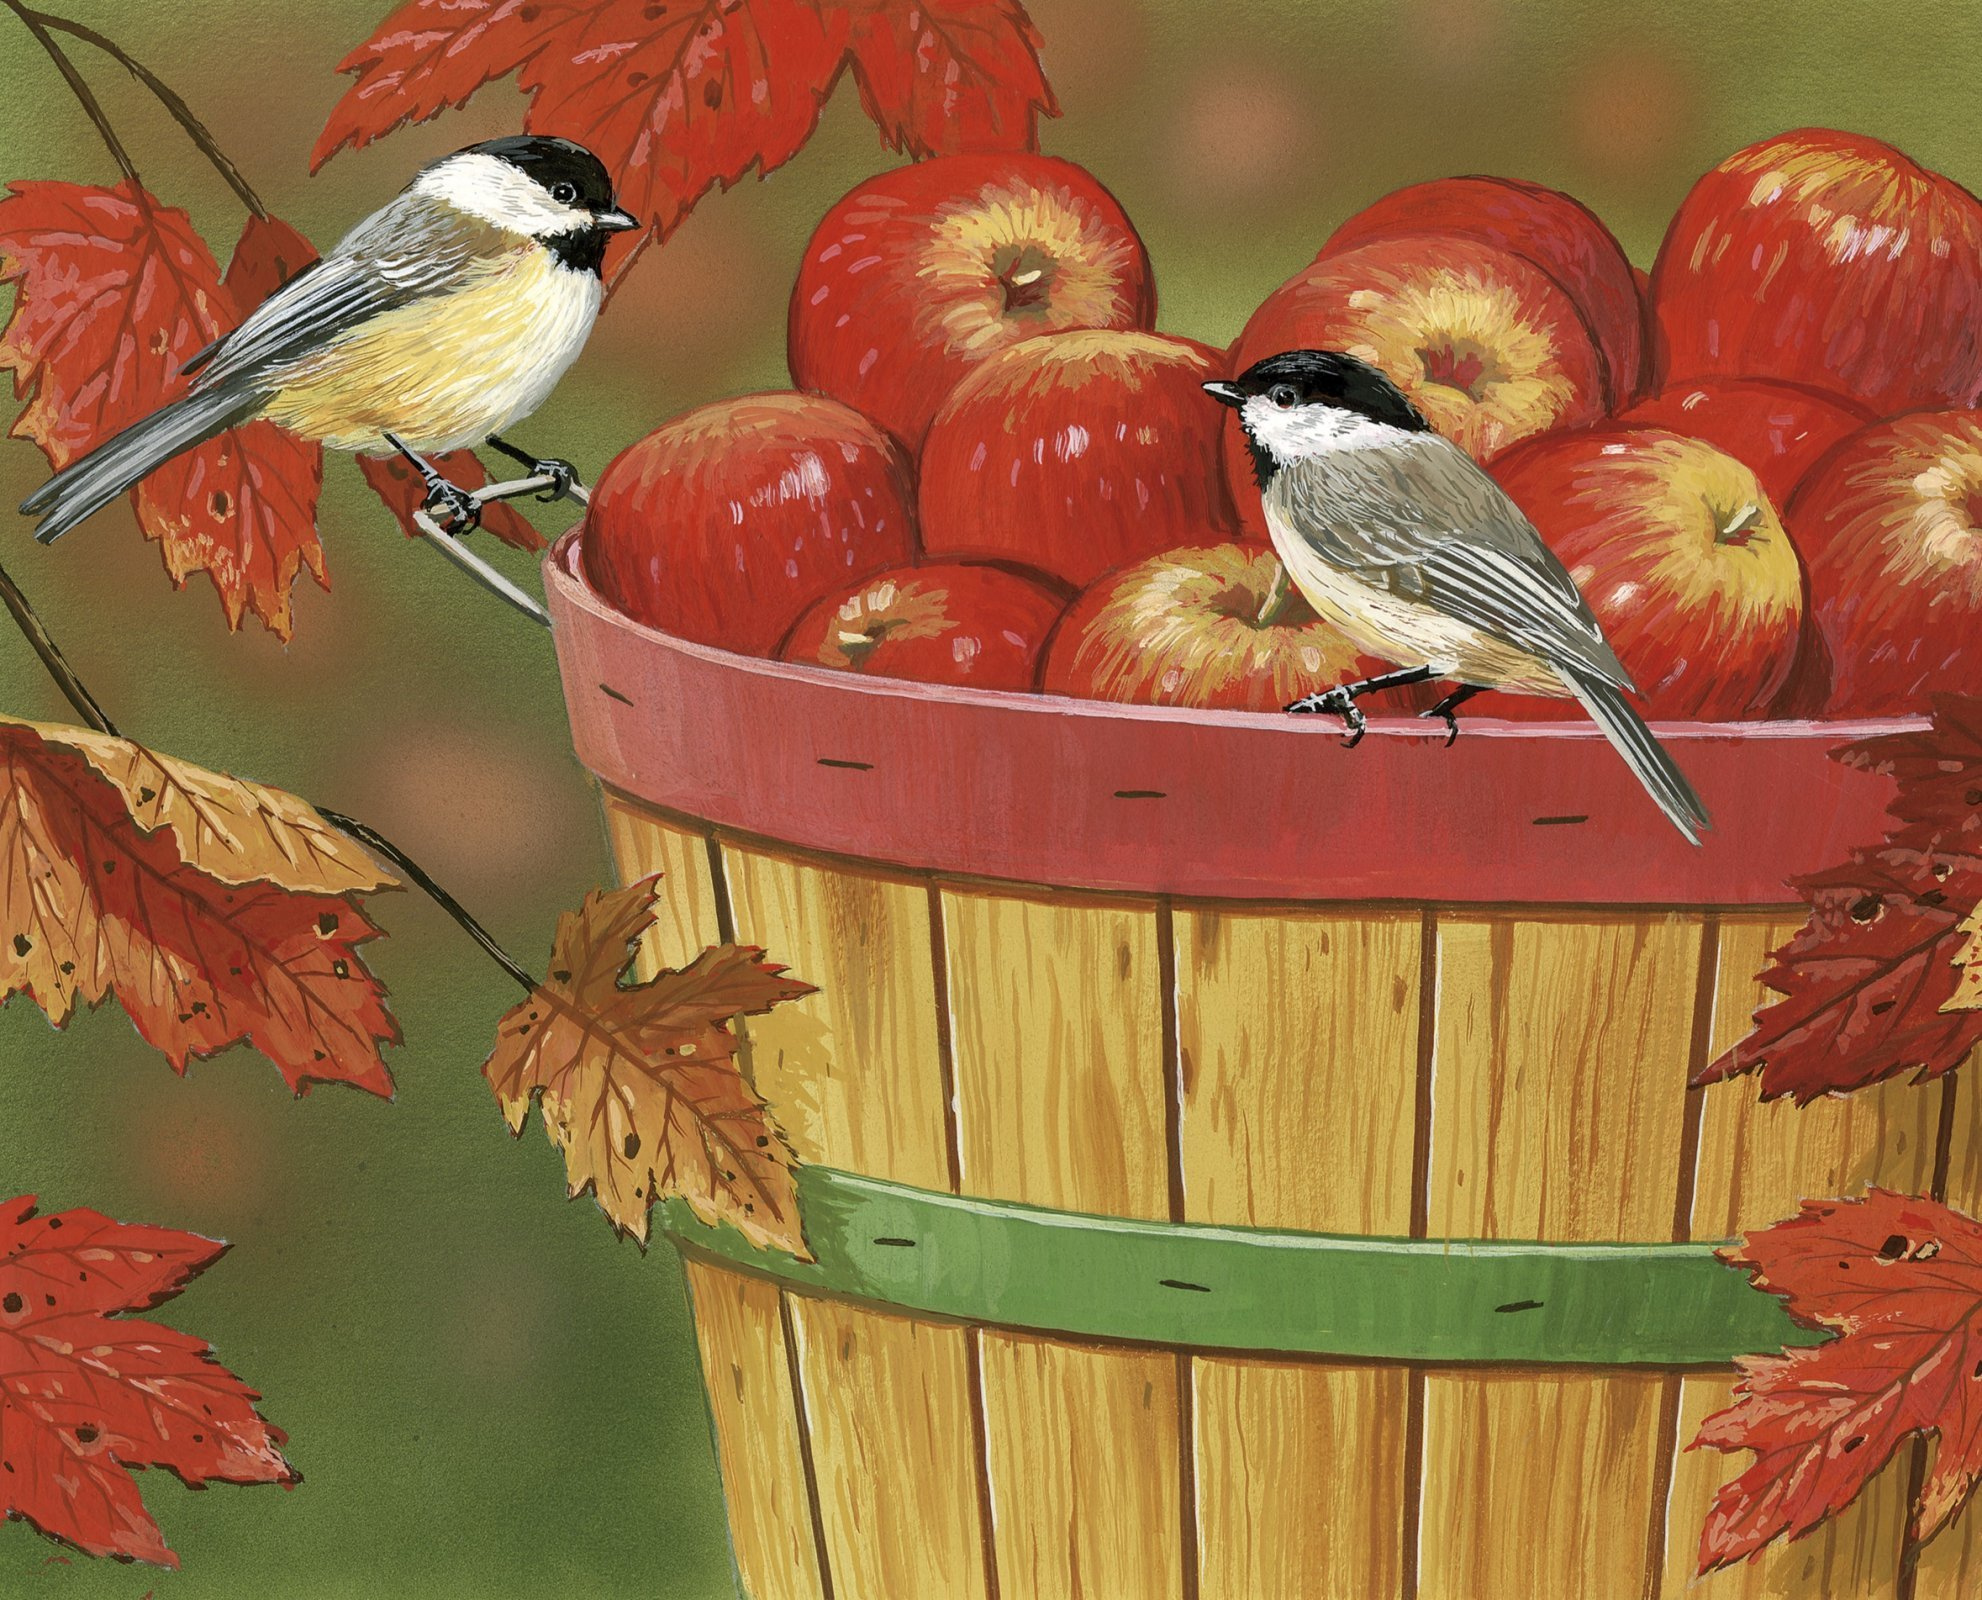 Apples with Chickadees Panel by William Vanderdasson (35 x 44) / David Textiles